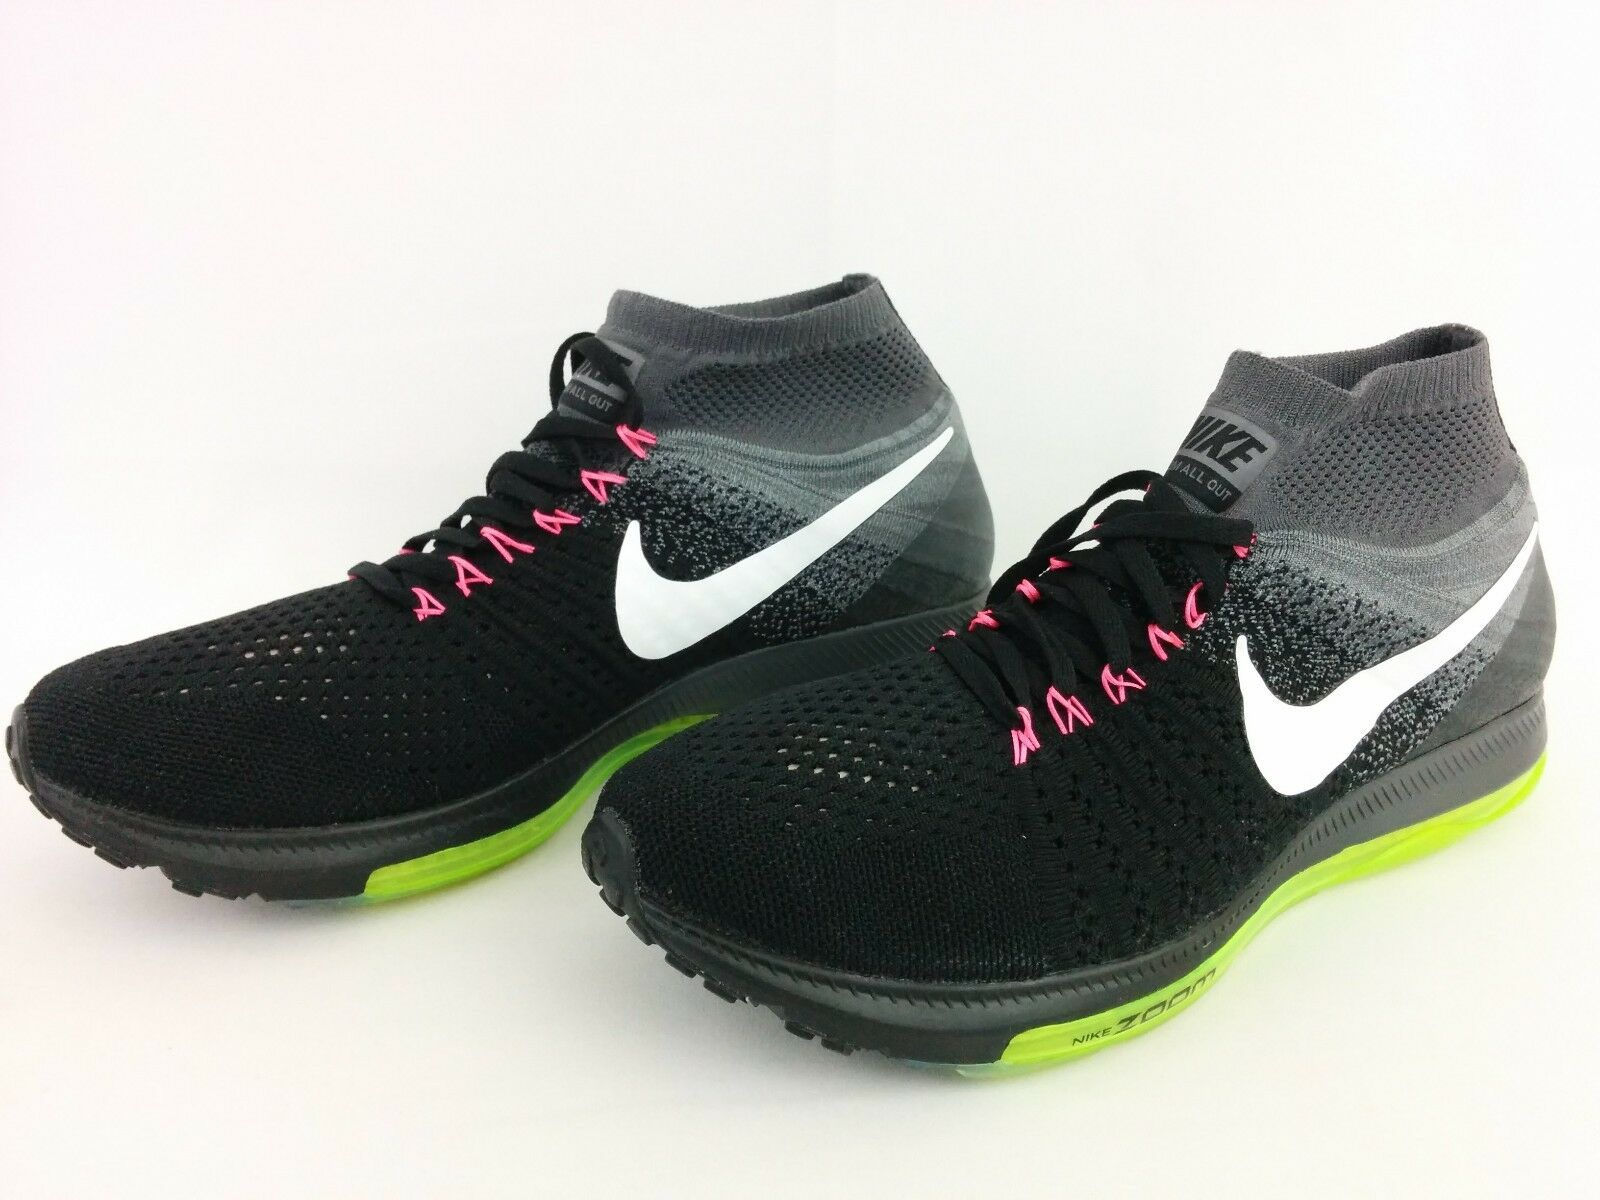 Nike Women's Zoom All Out Flyknit Running Shoes Air Max Black Grey 845361-002 12